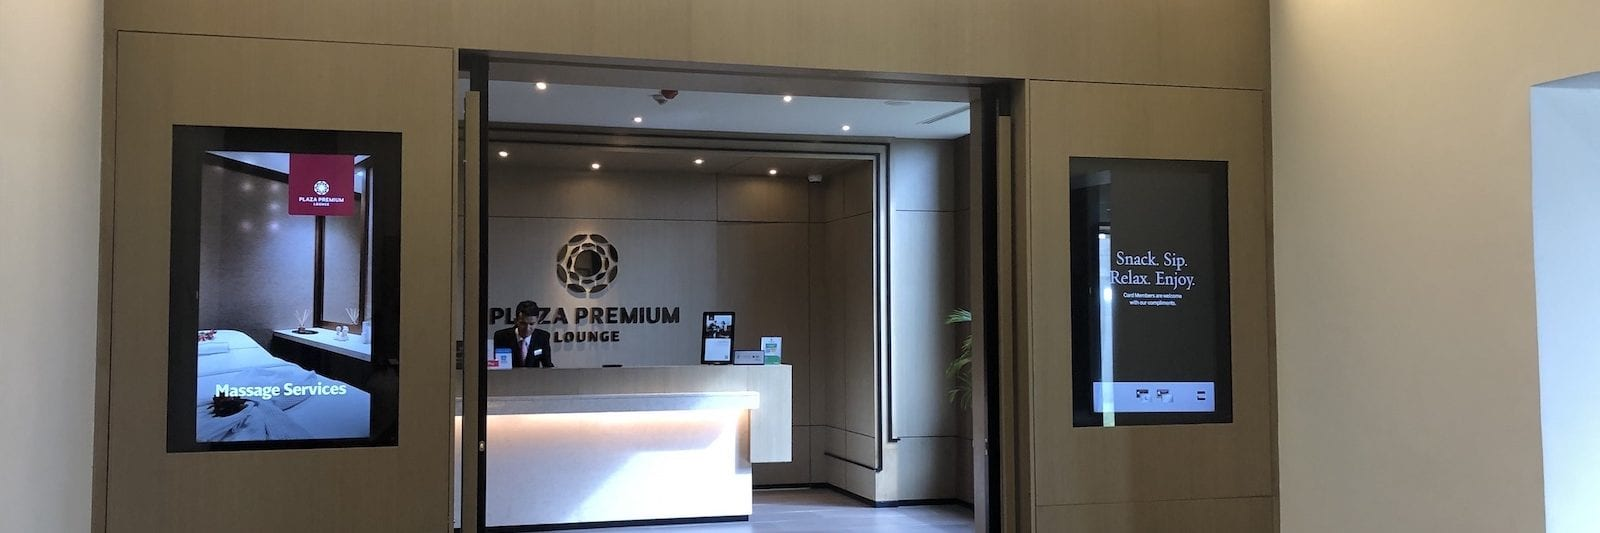 Entrance to Plaza Premium Lounge